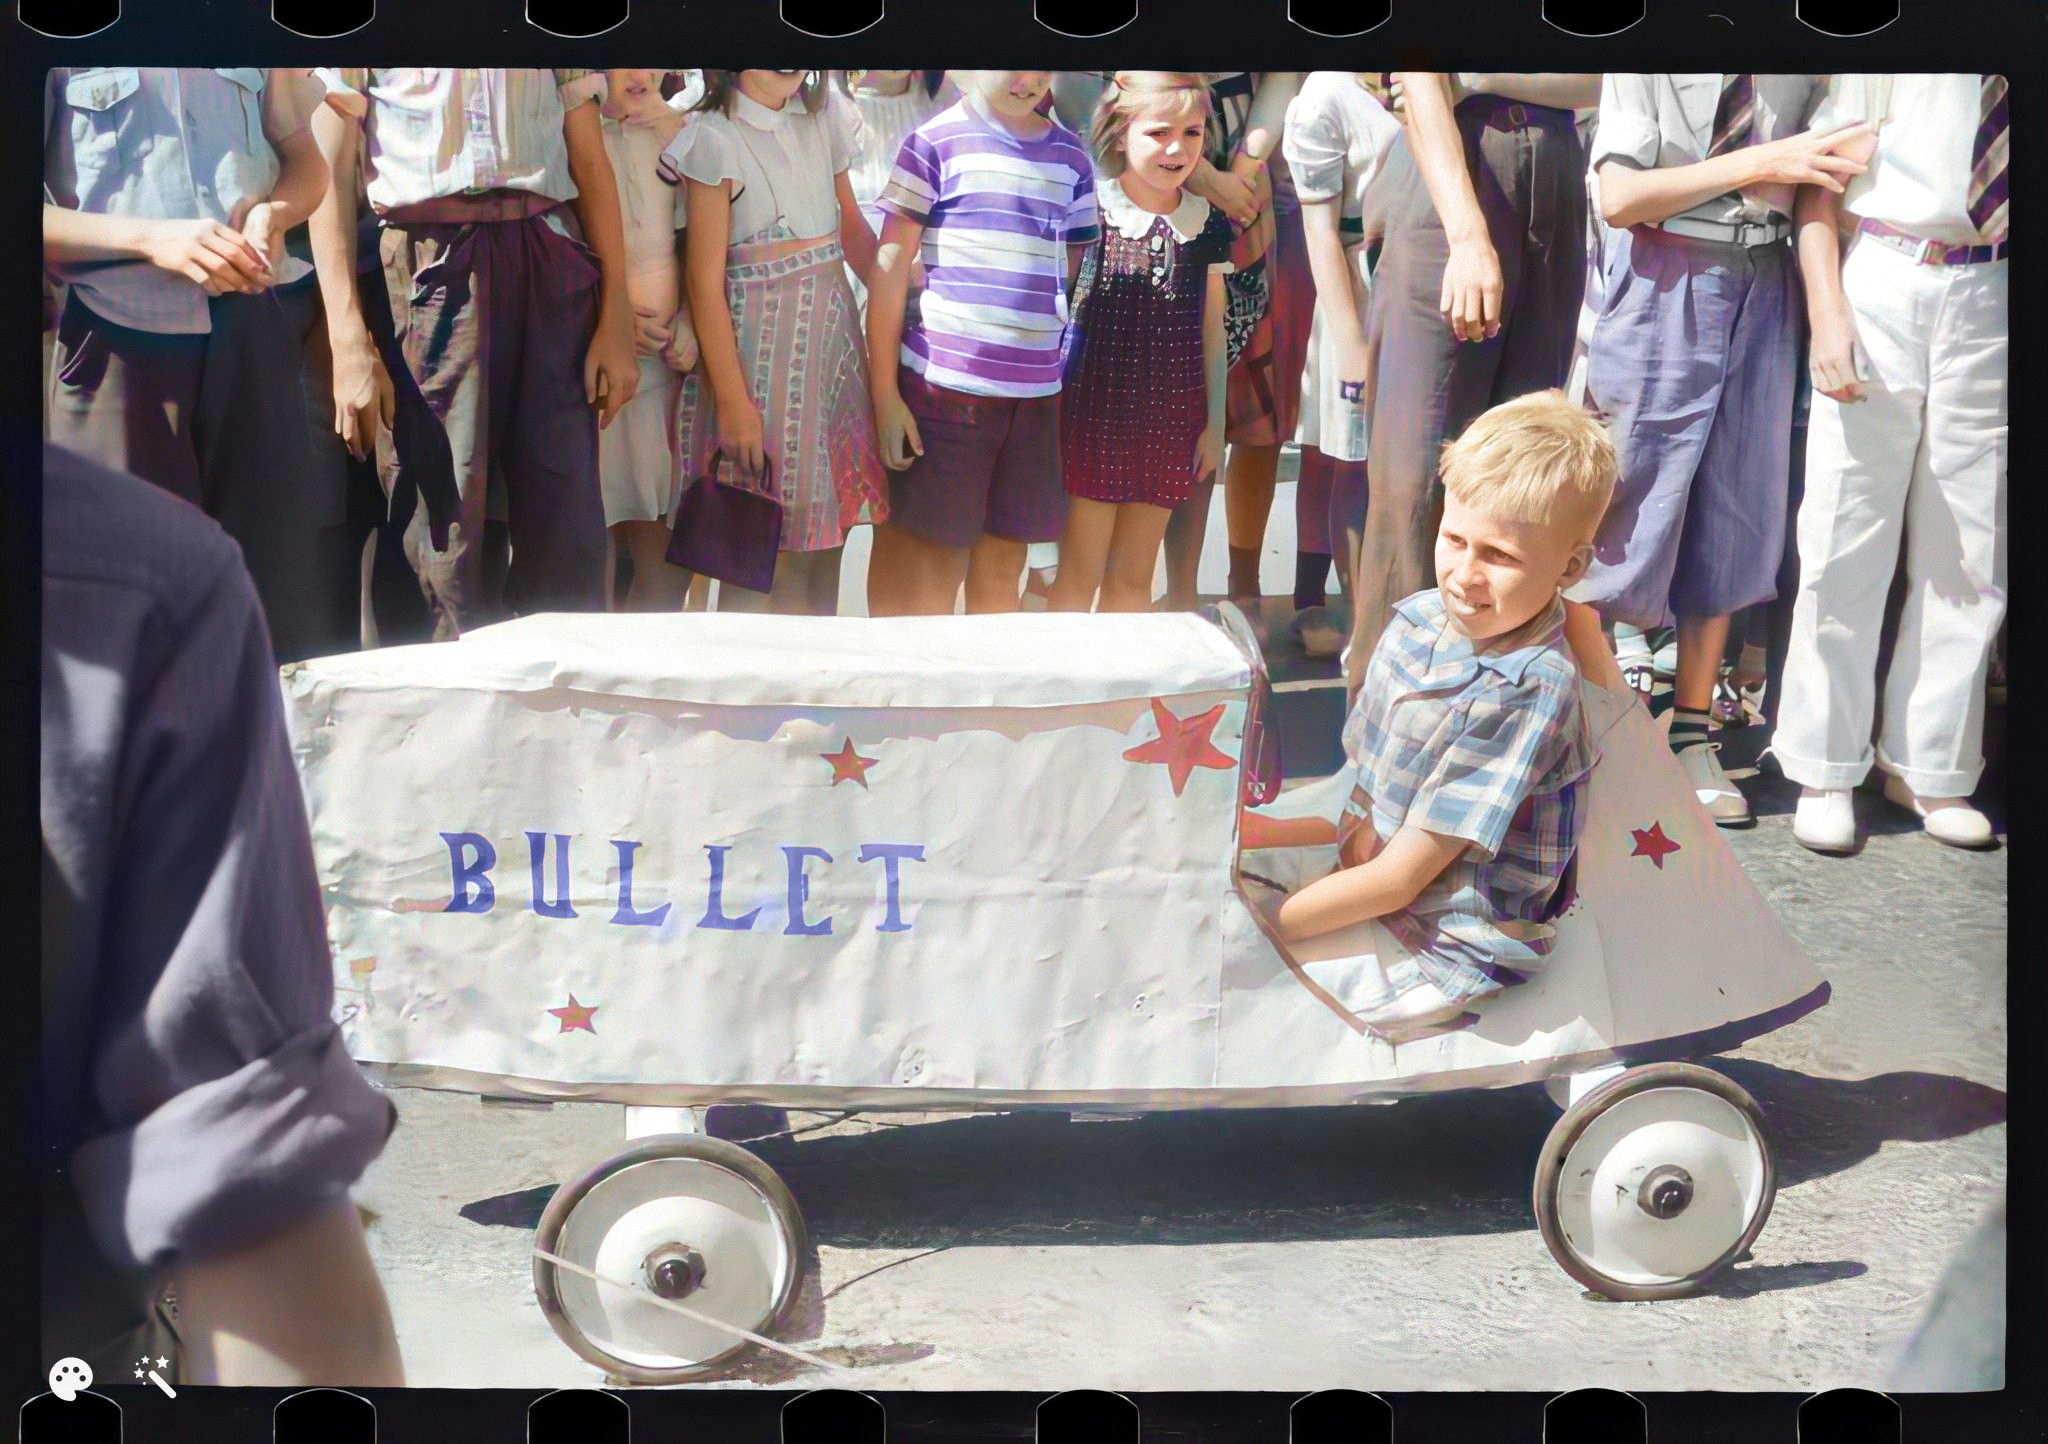 A little boy participates in a soapbox auto race with his vehicle, 'Bullet,' in Salisbury, Maryland, during the July 4 celebrations in 1940. Courtesy of the Library of Congress